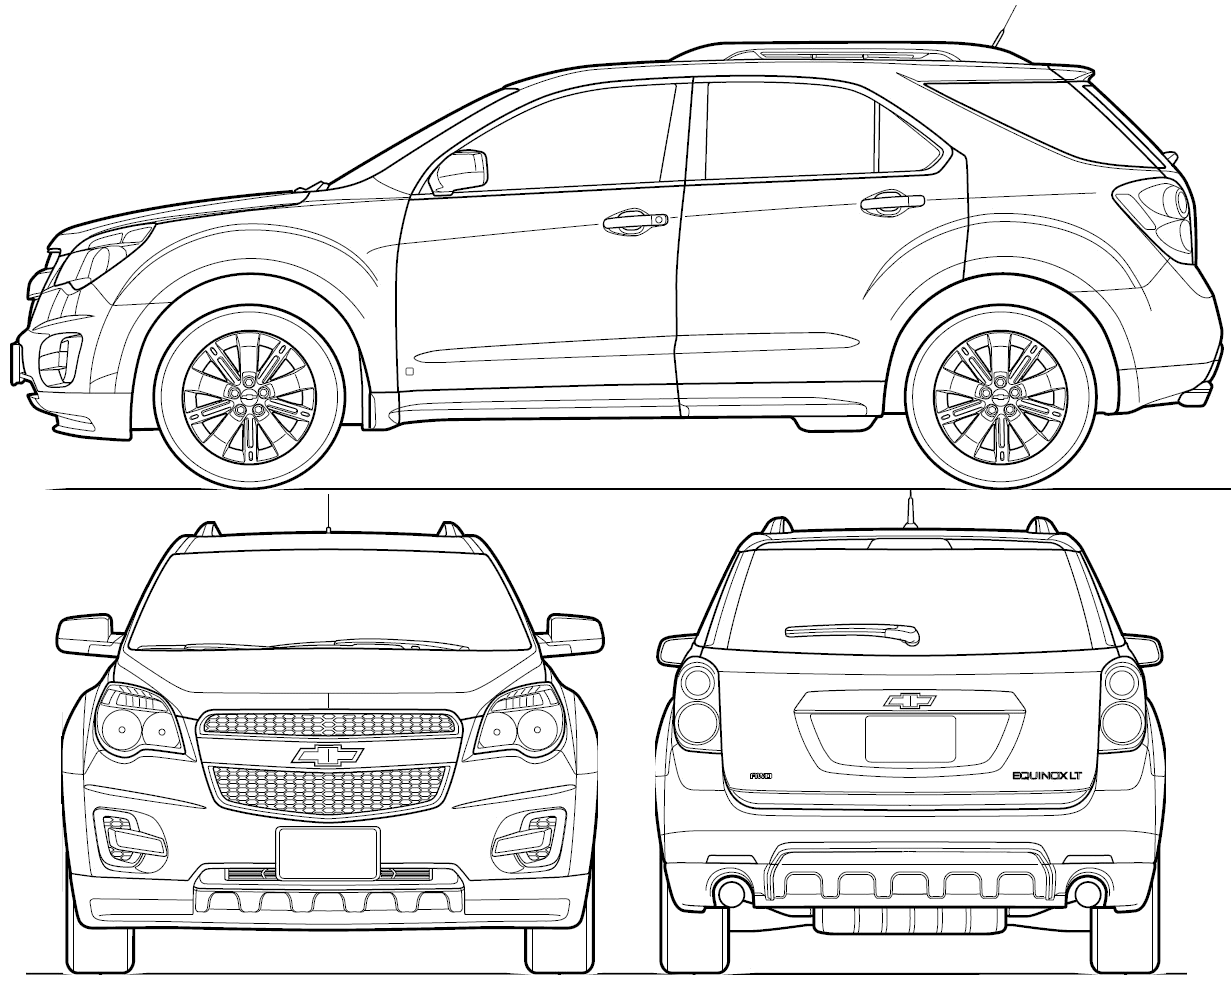 Chevrolet Equinox blueprint